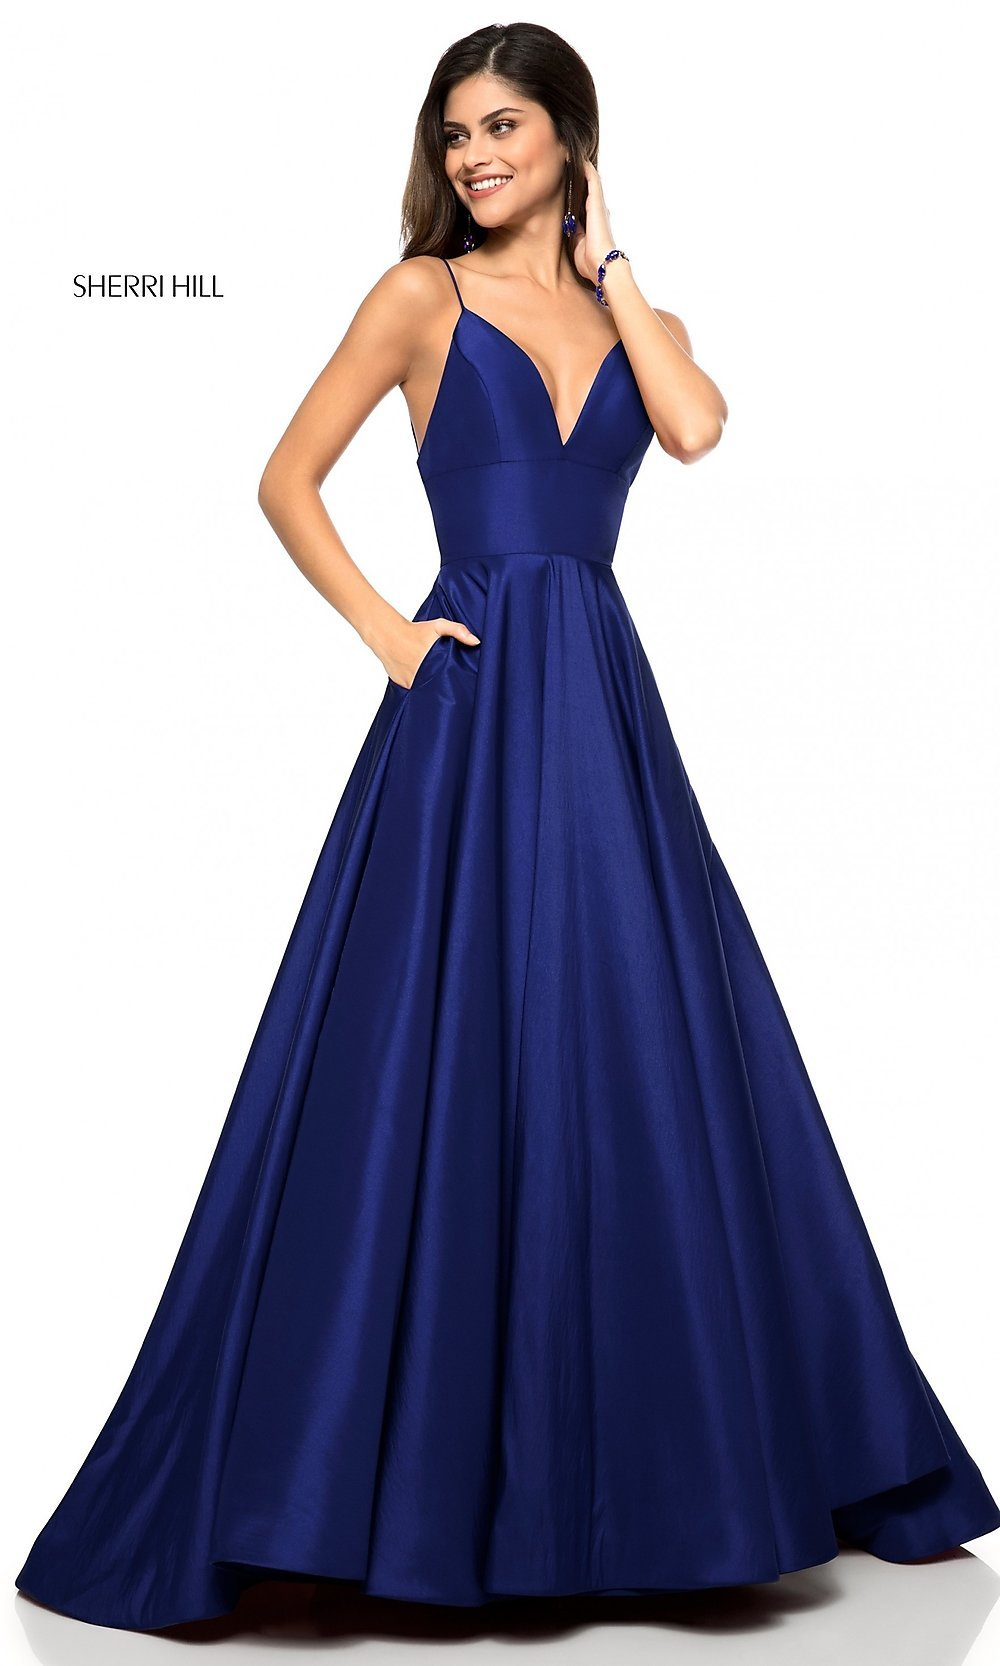 8a1ac2384ee Sherri Hill V-Neck Prom Dress with Pockets - PromGirl